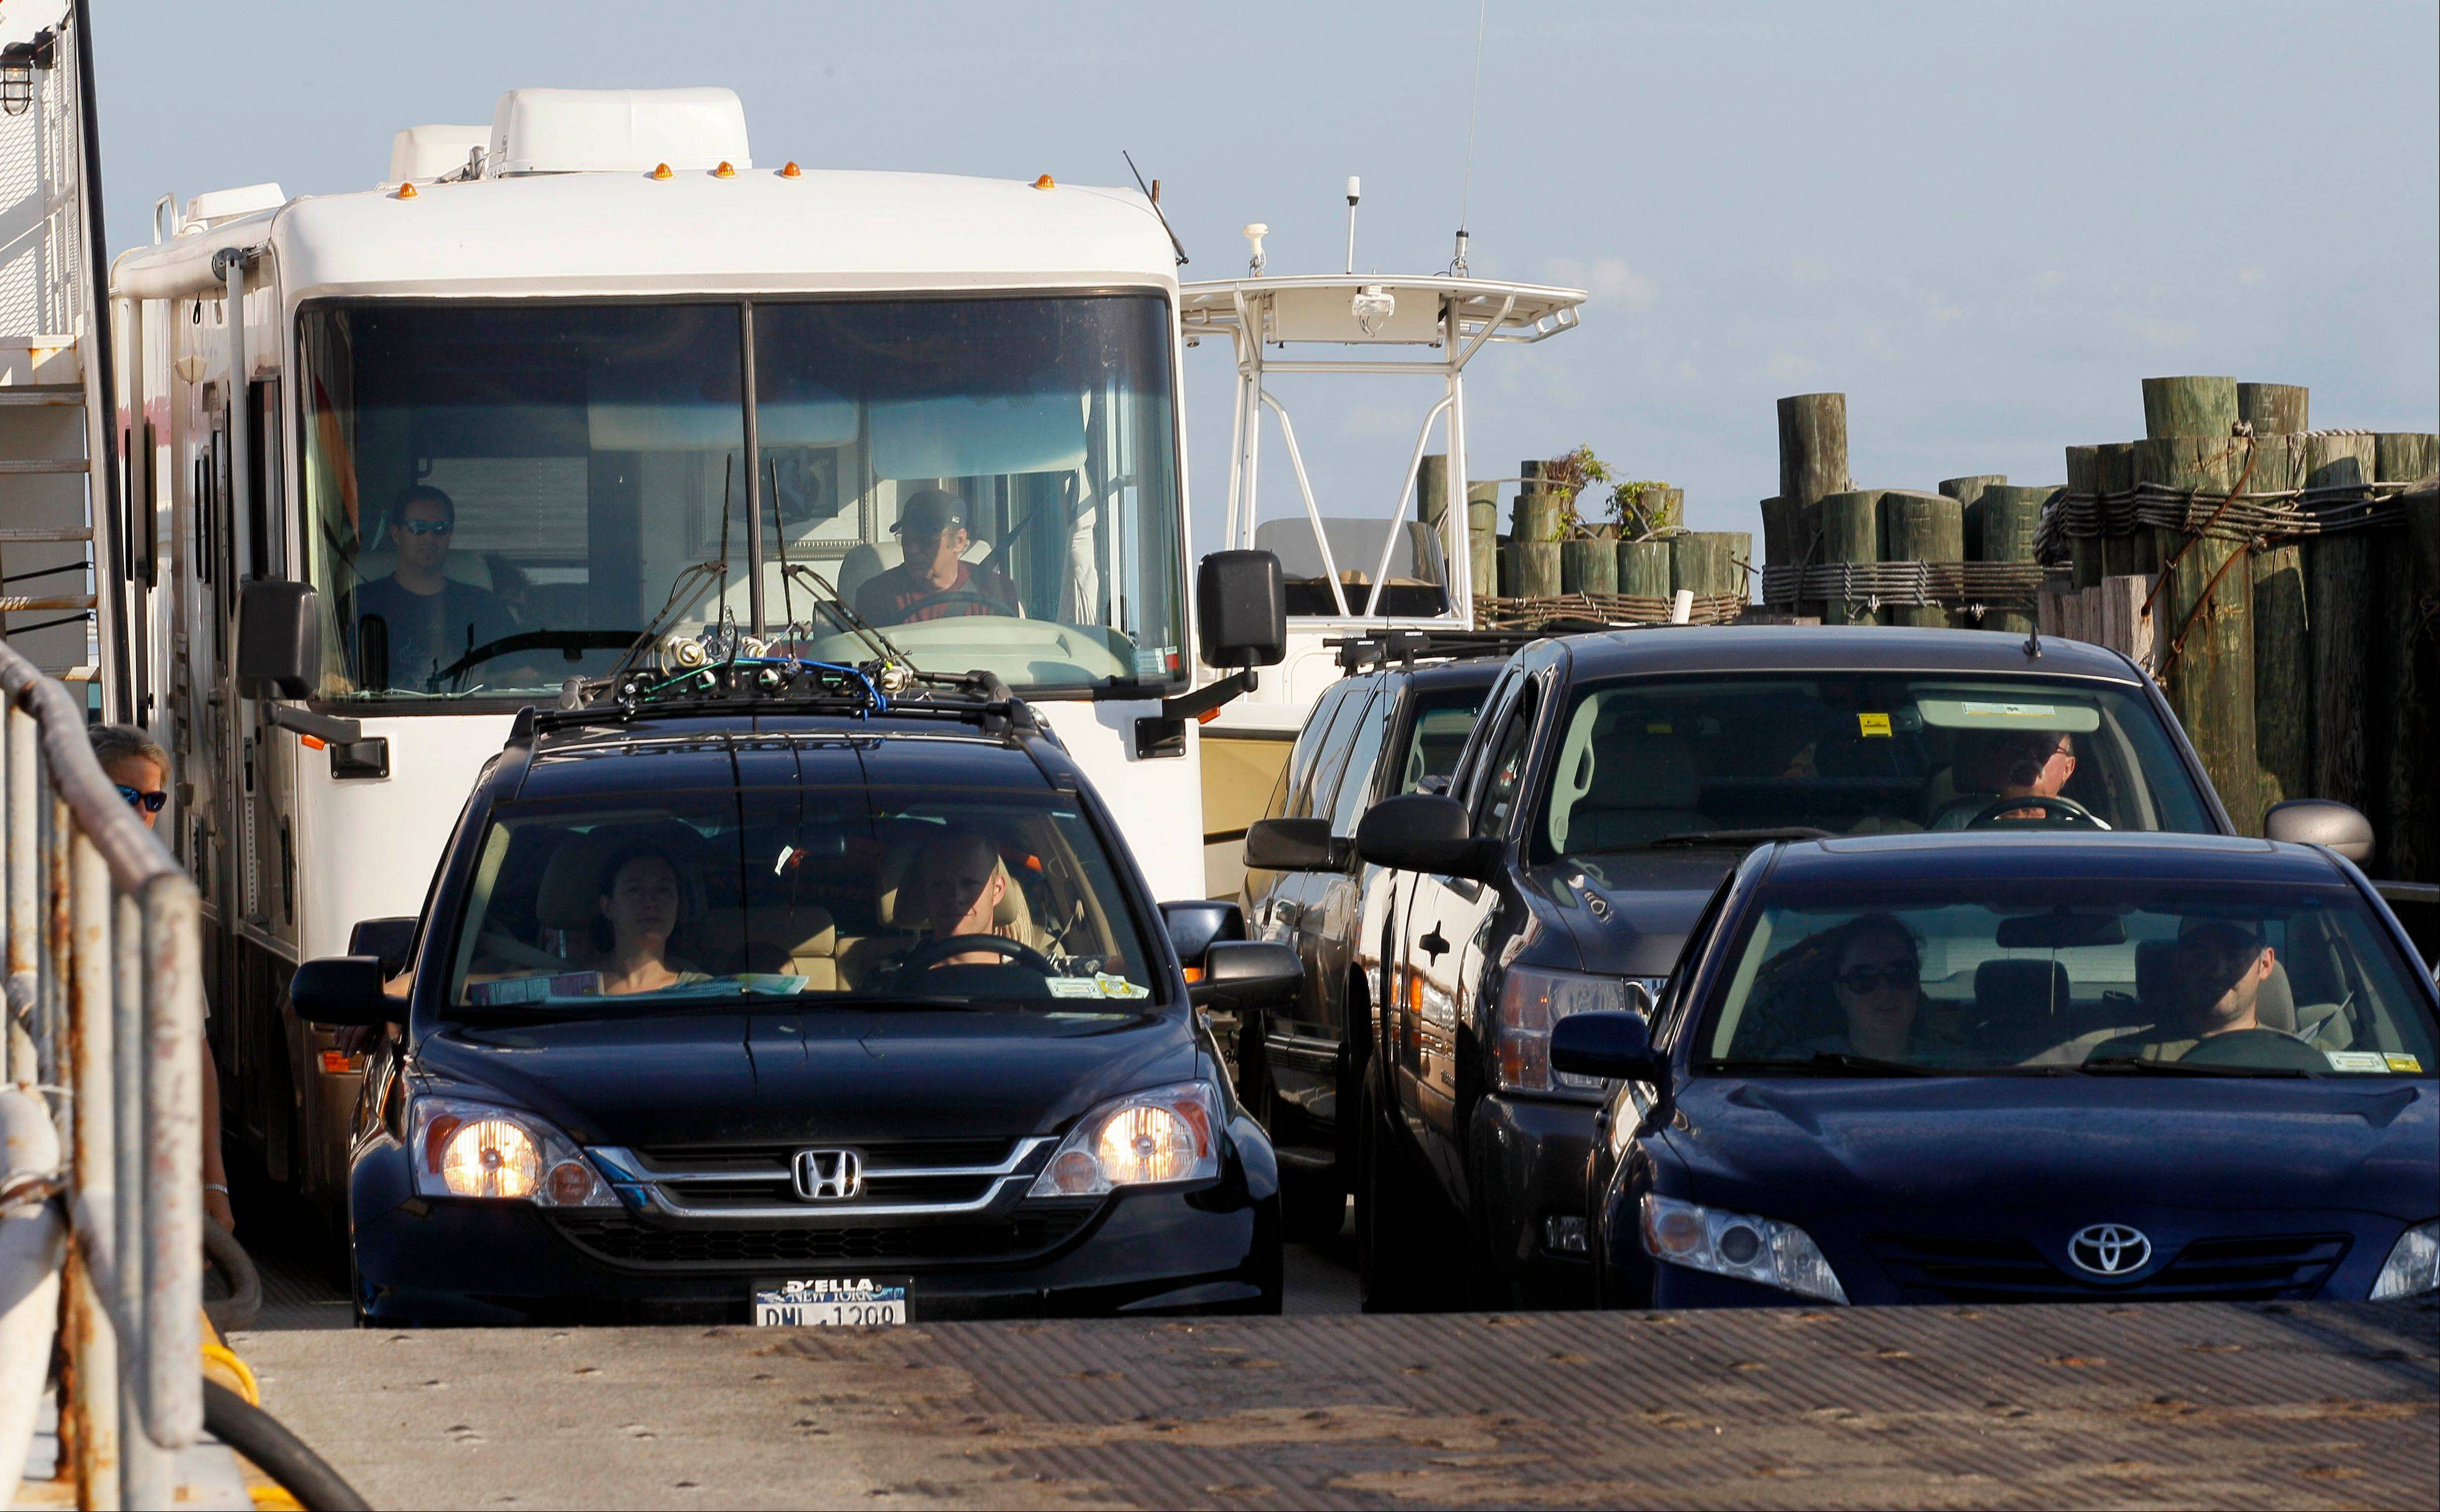 A ferry from from Ocracoke Island delivers passengers in Hatteras, N.C., Wednesday, Aug. 24, 2011. A visitor evacuation is underway on Ocracoke Island as Hurricane Irene approaches the Carolinas and the east coast.